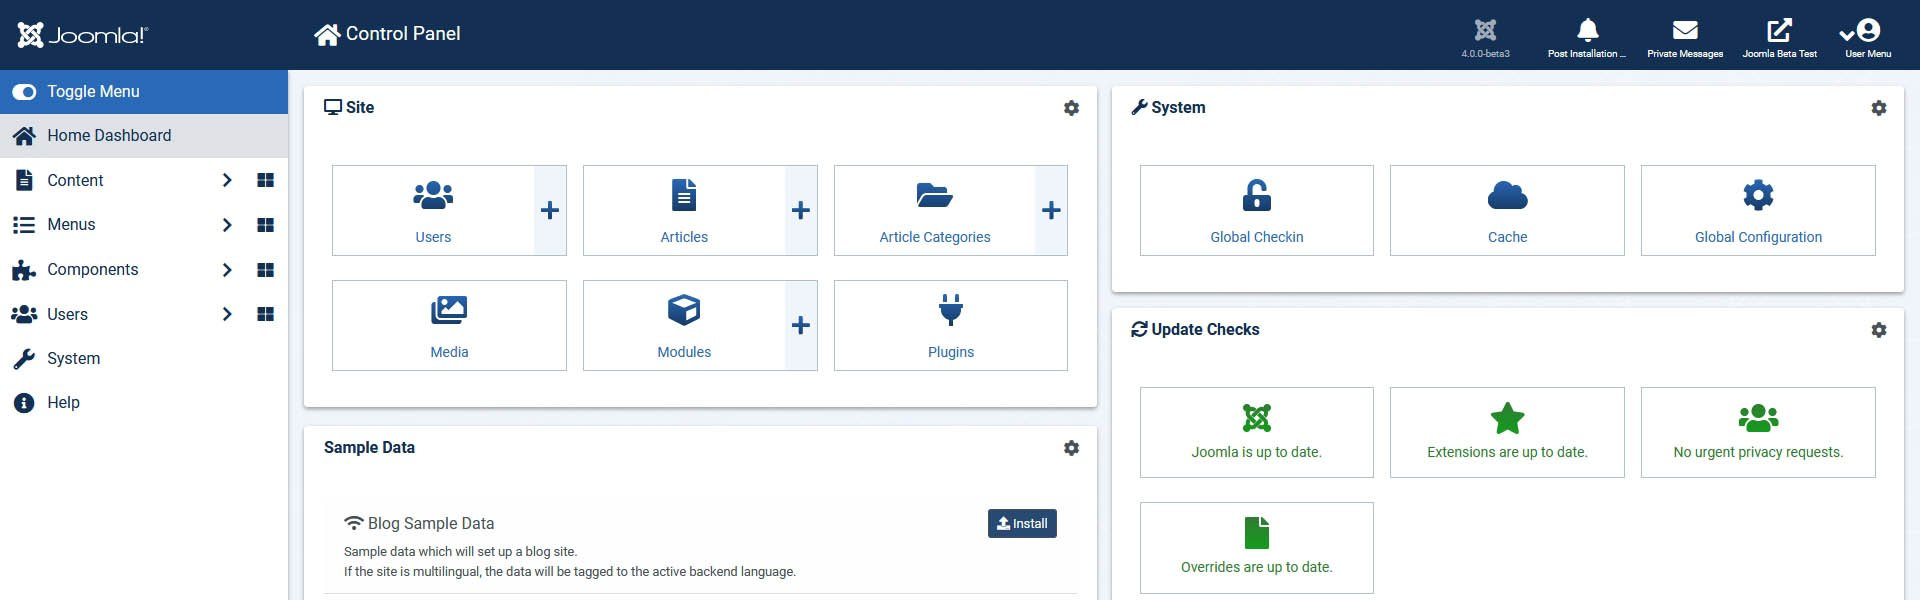 Brand new dashboard of Joomla 4